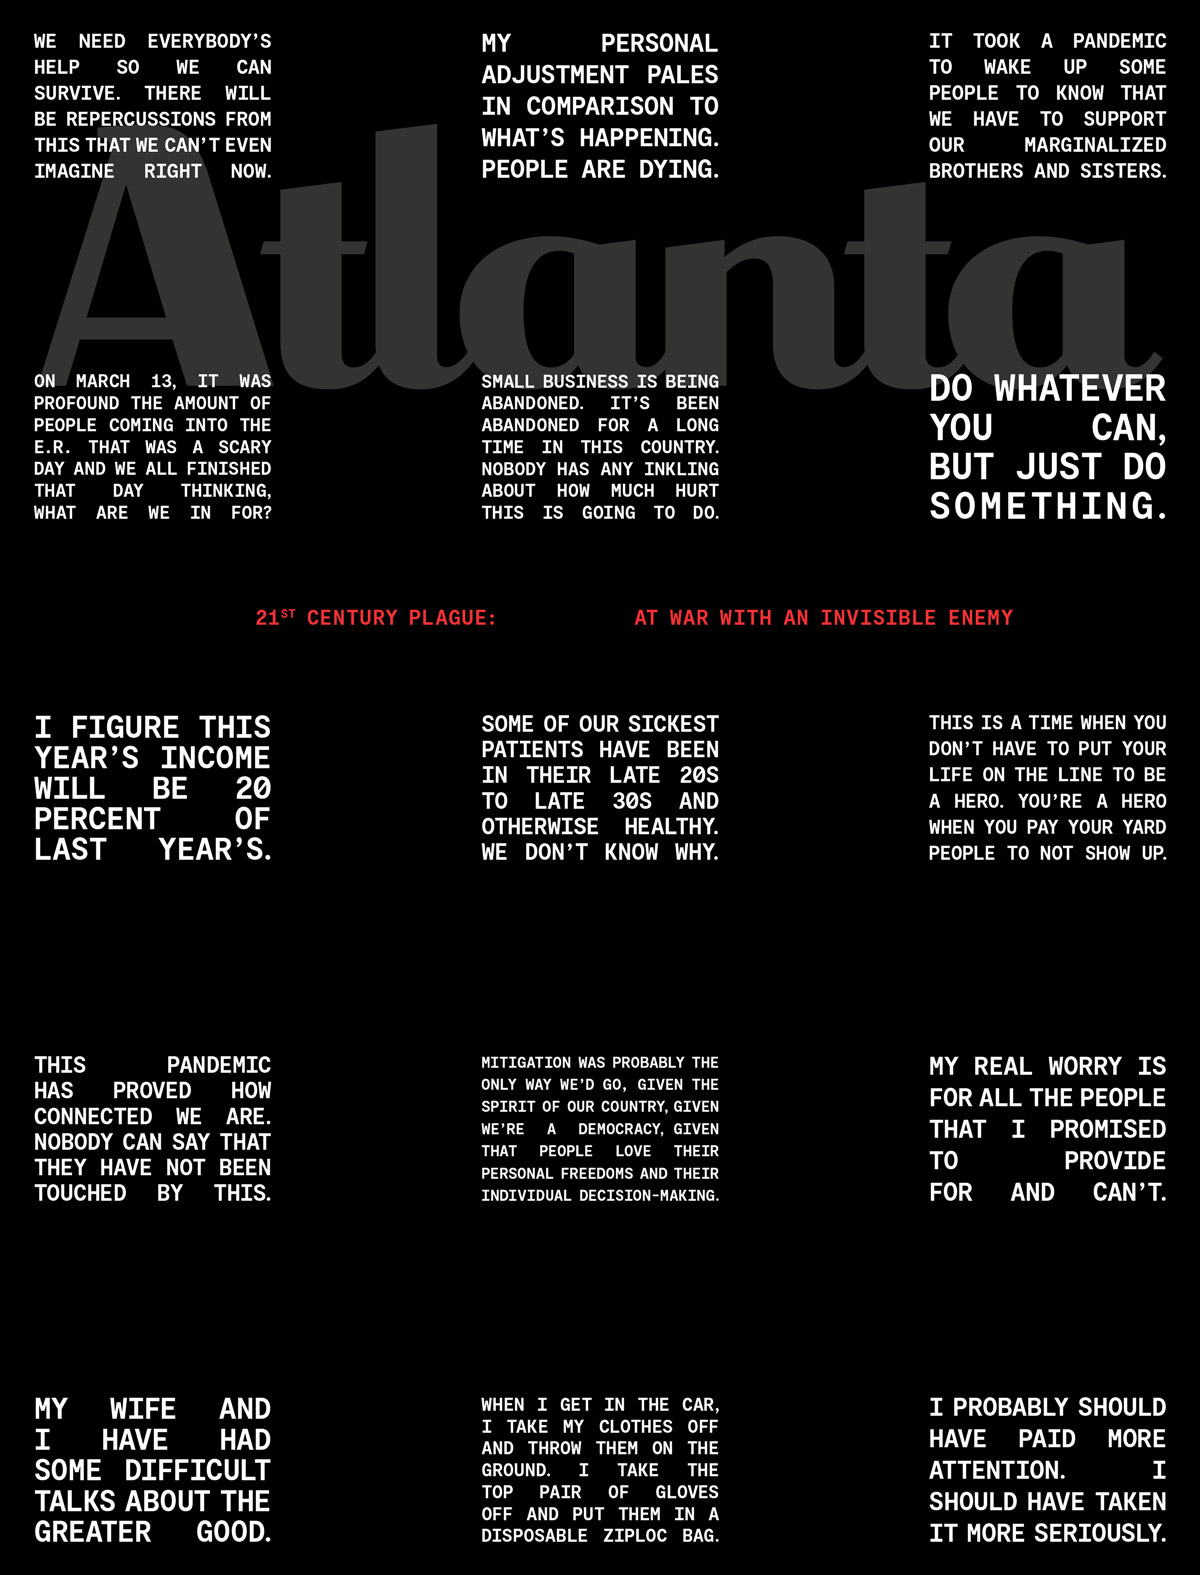 Atlanta Magazine May 2020 issue